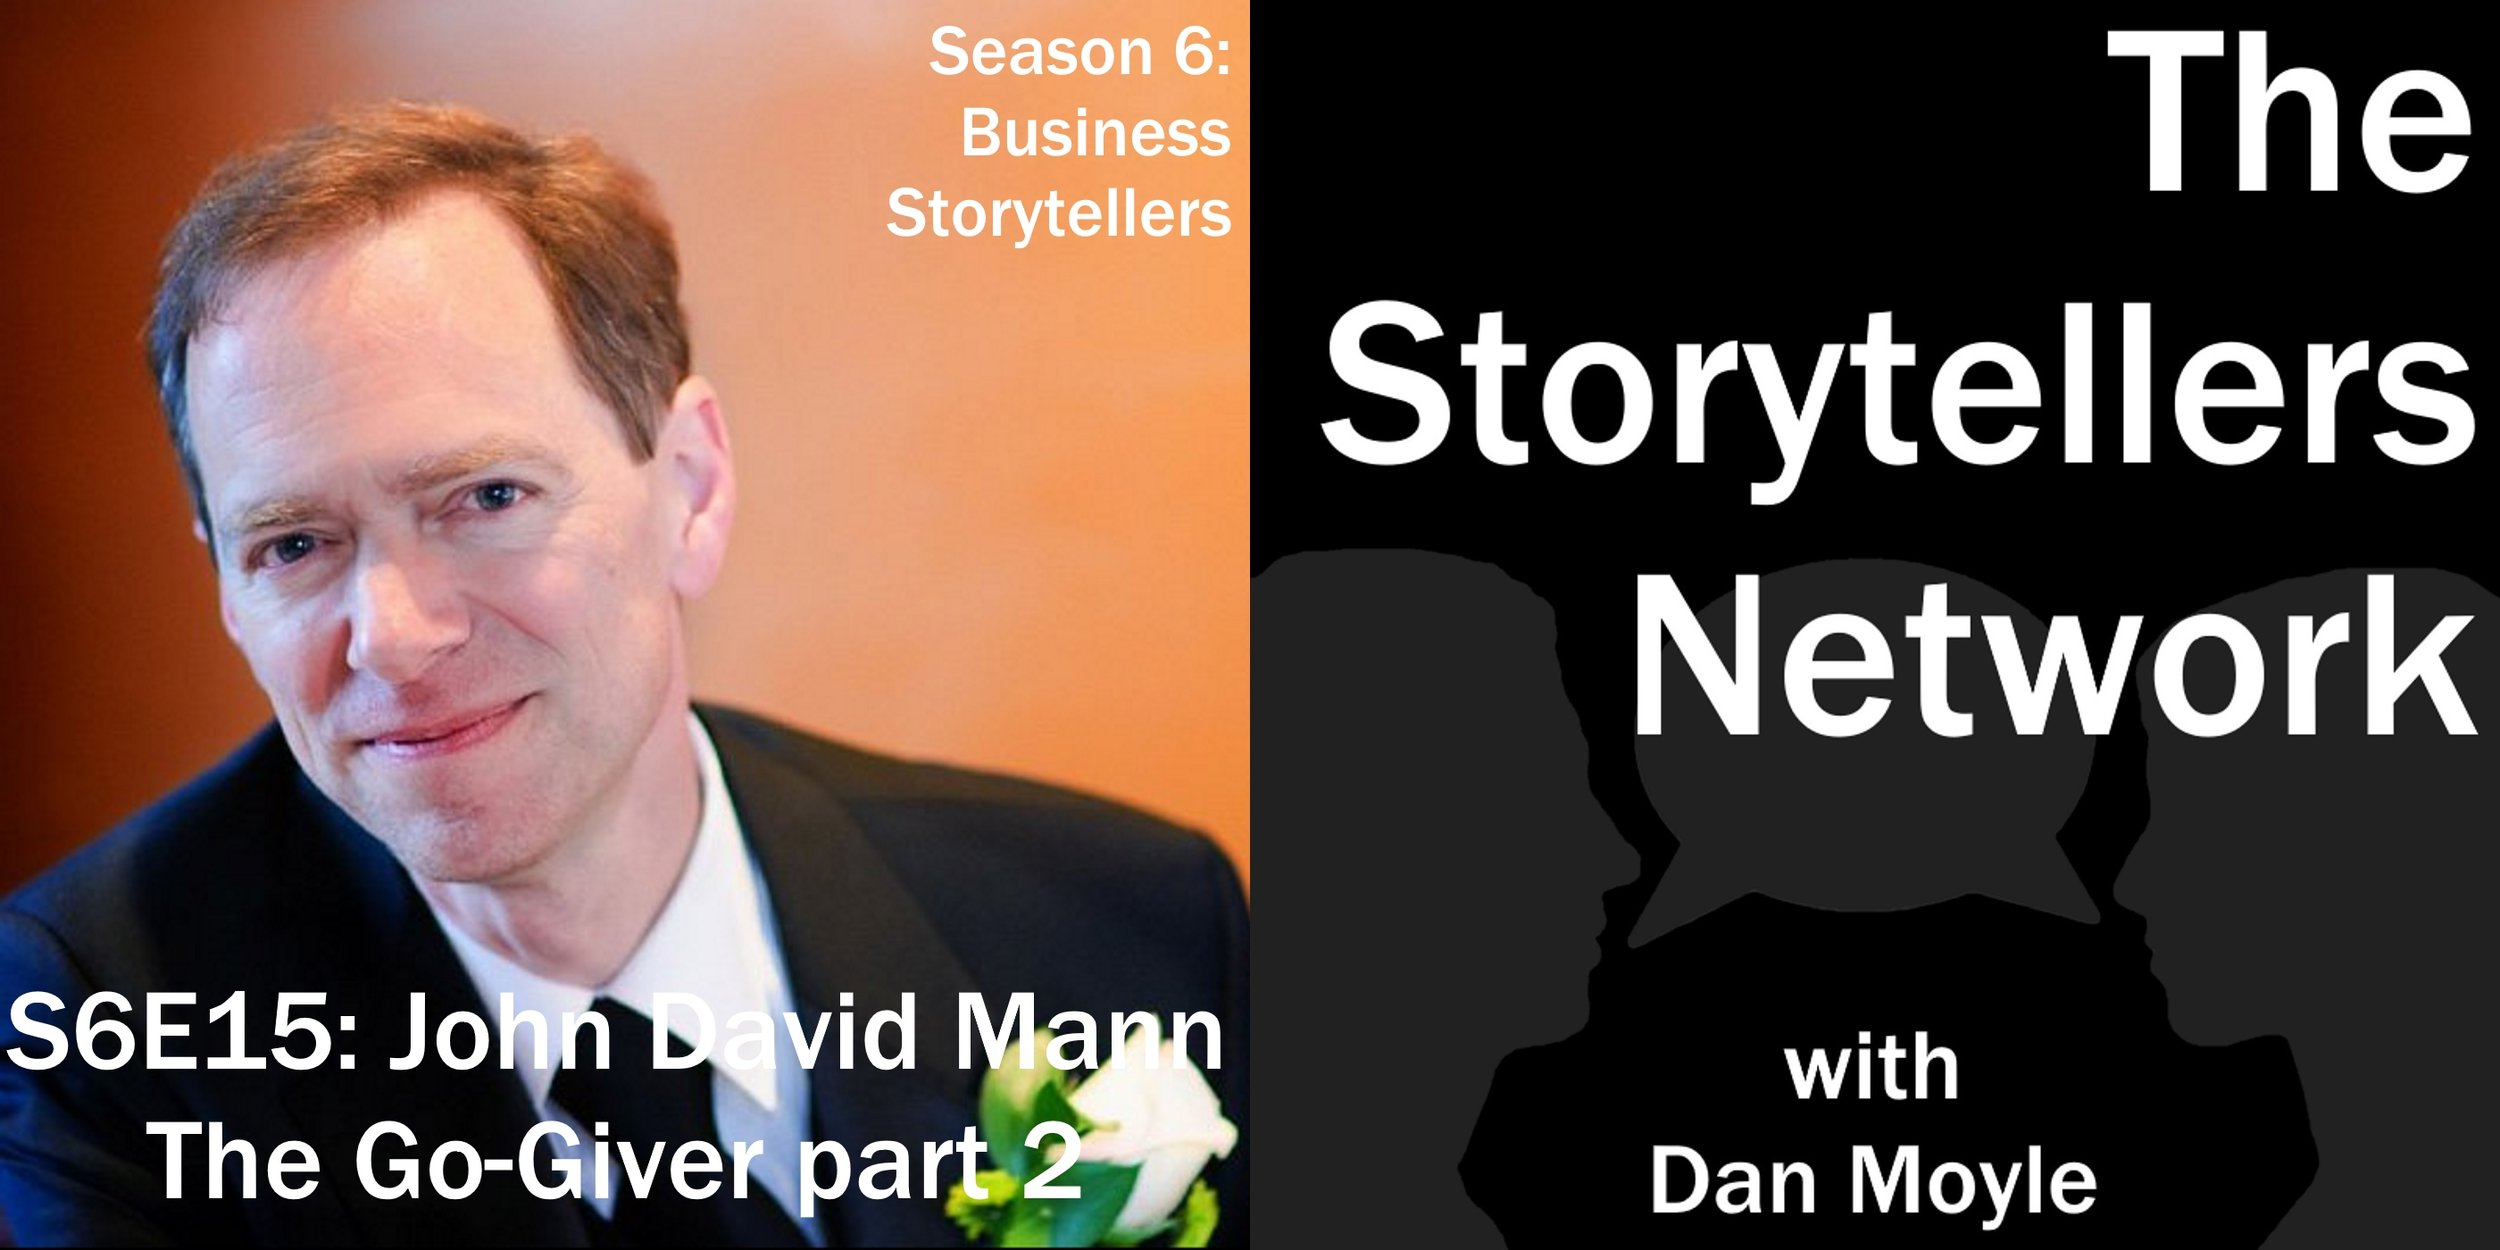 The Go-Giver Part 2 - John David Mann (#83) — The Storytellers